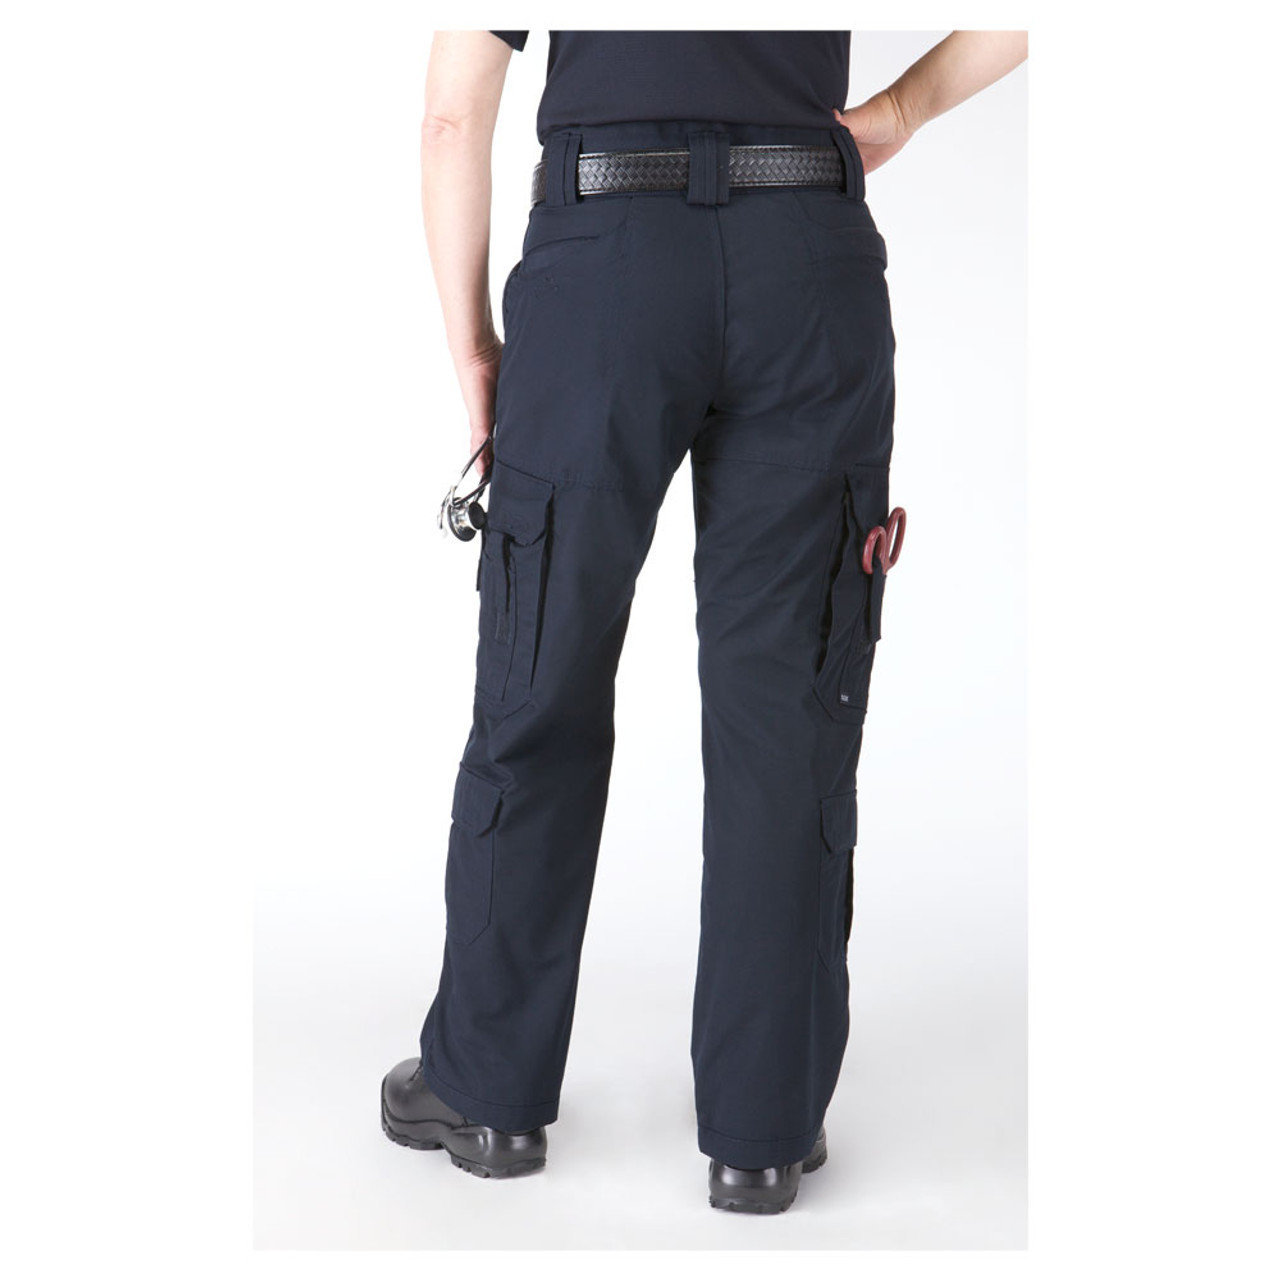 64369: EMS Women's Taclite Pant by 5.11